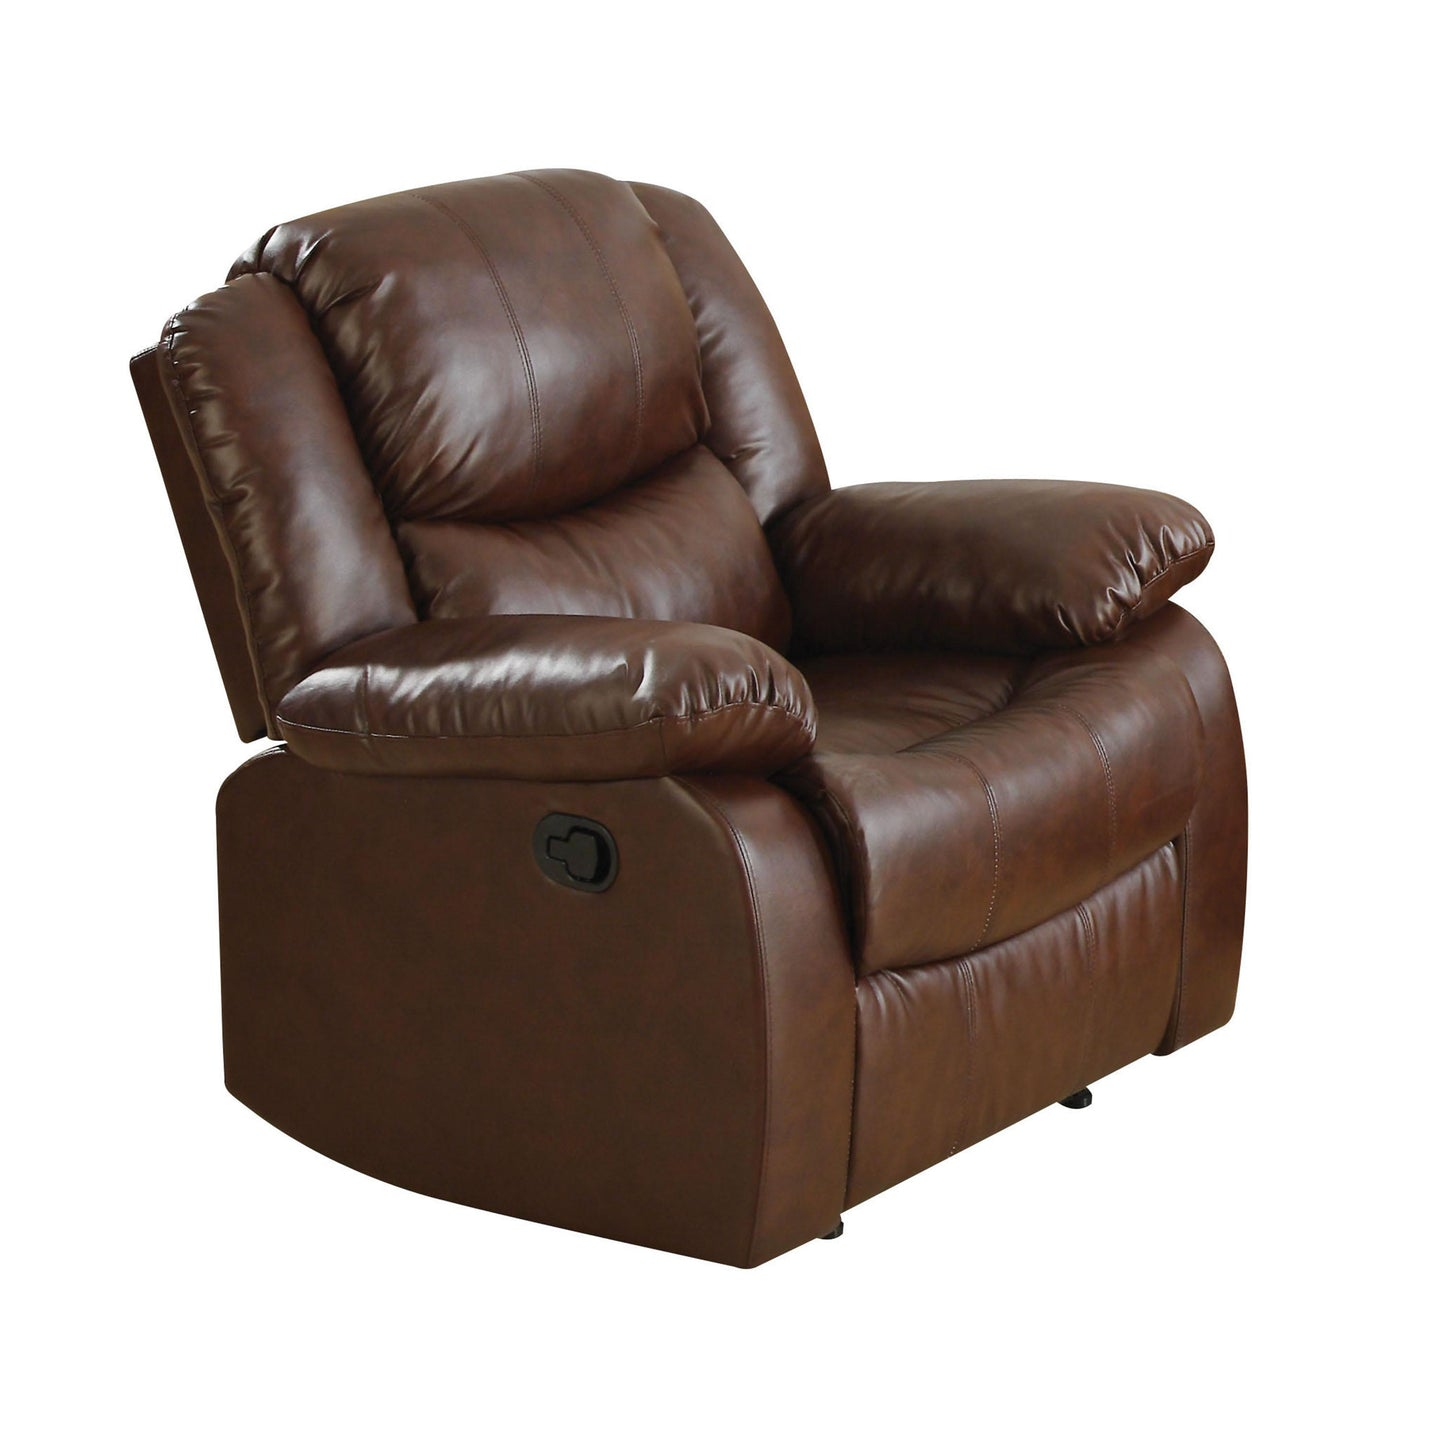 Acme Fullerton Brown Bonded Leather Finish Recliner Chair